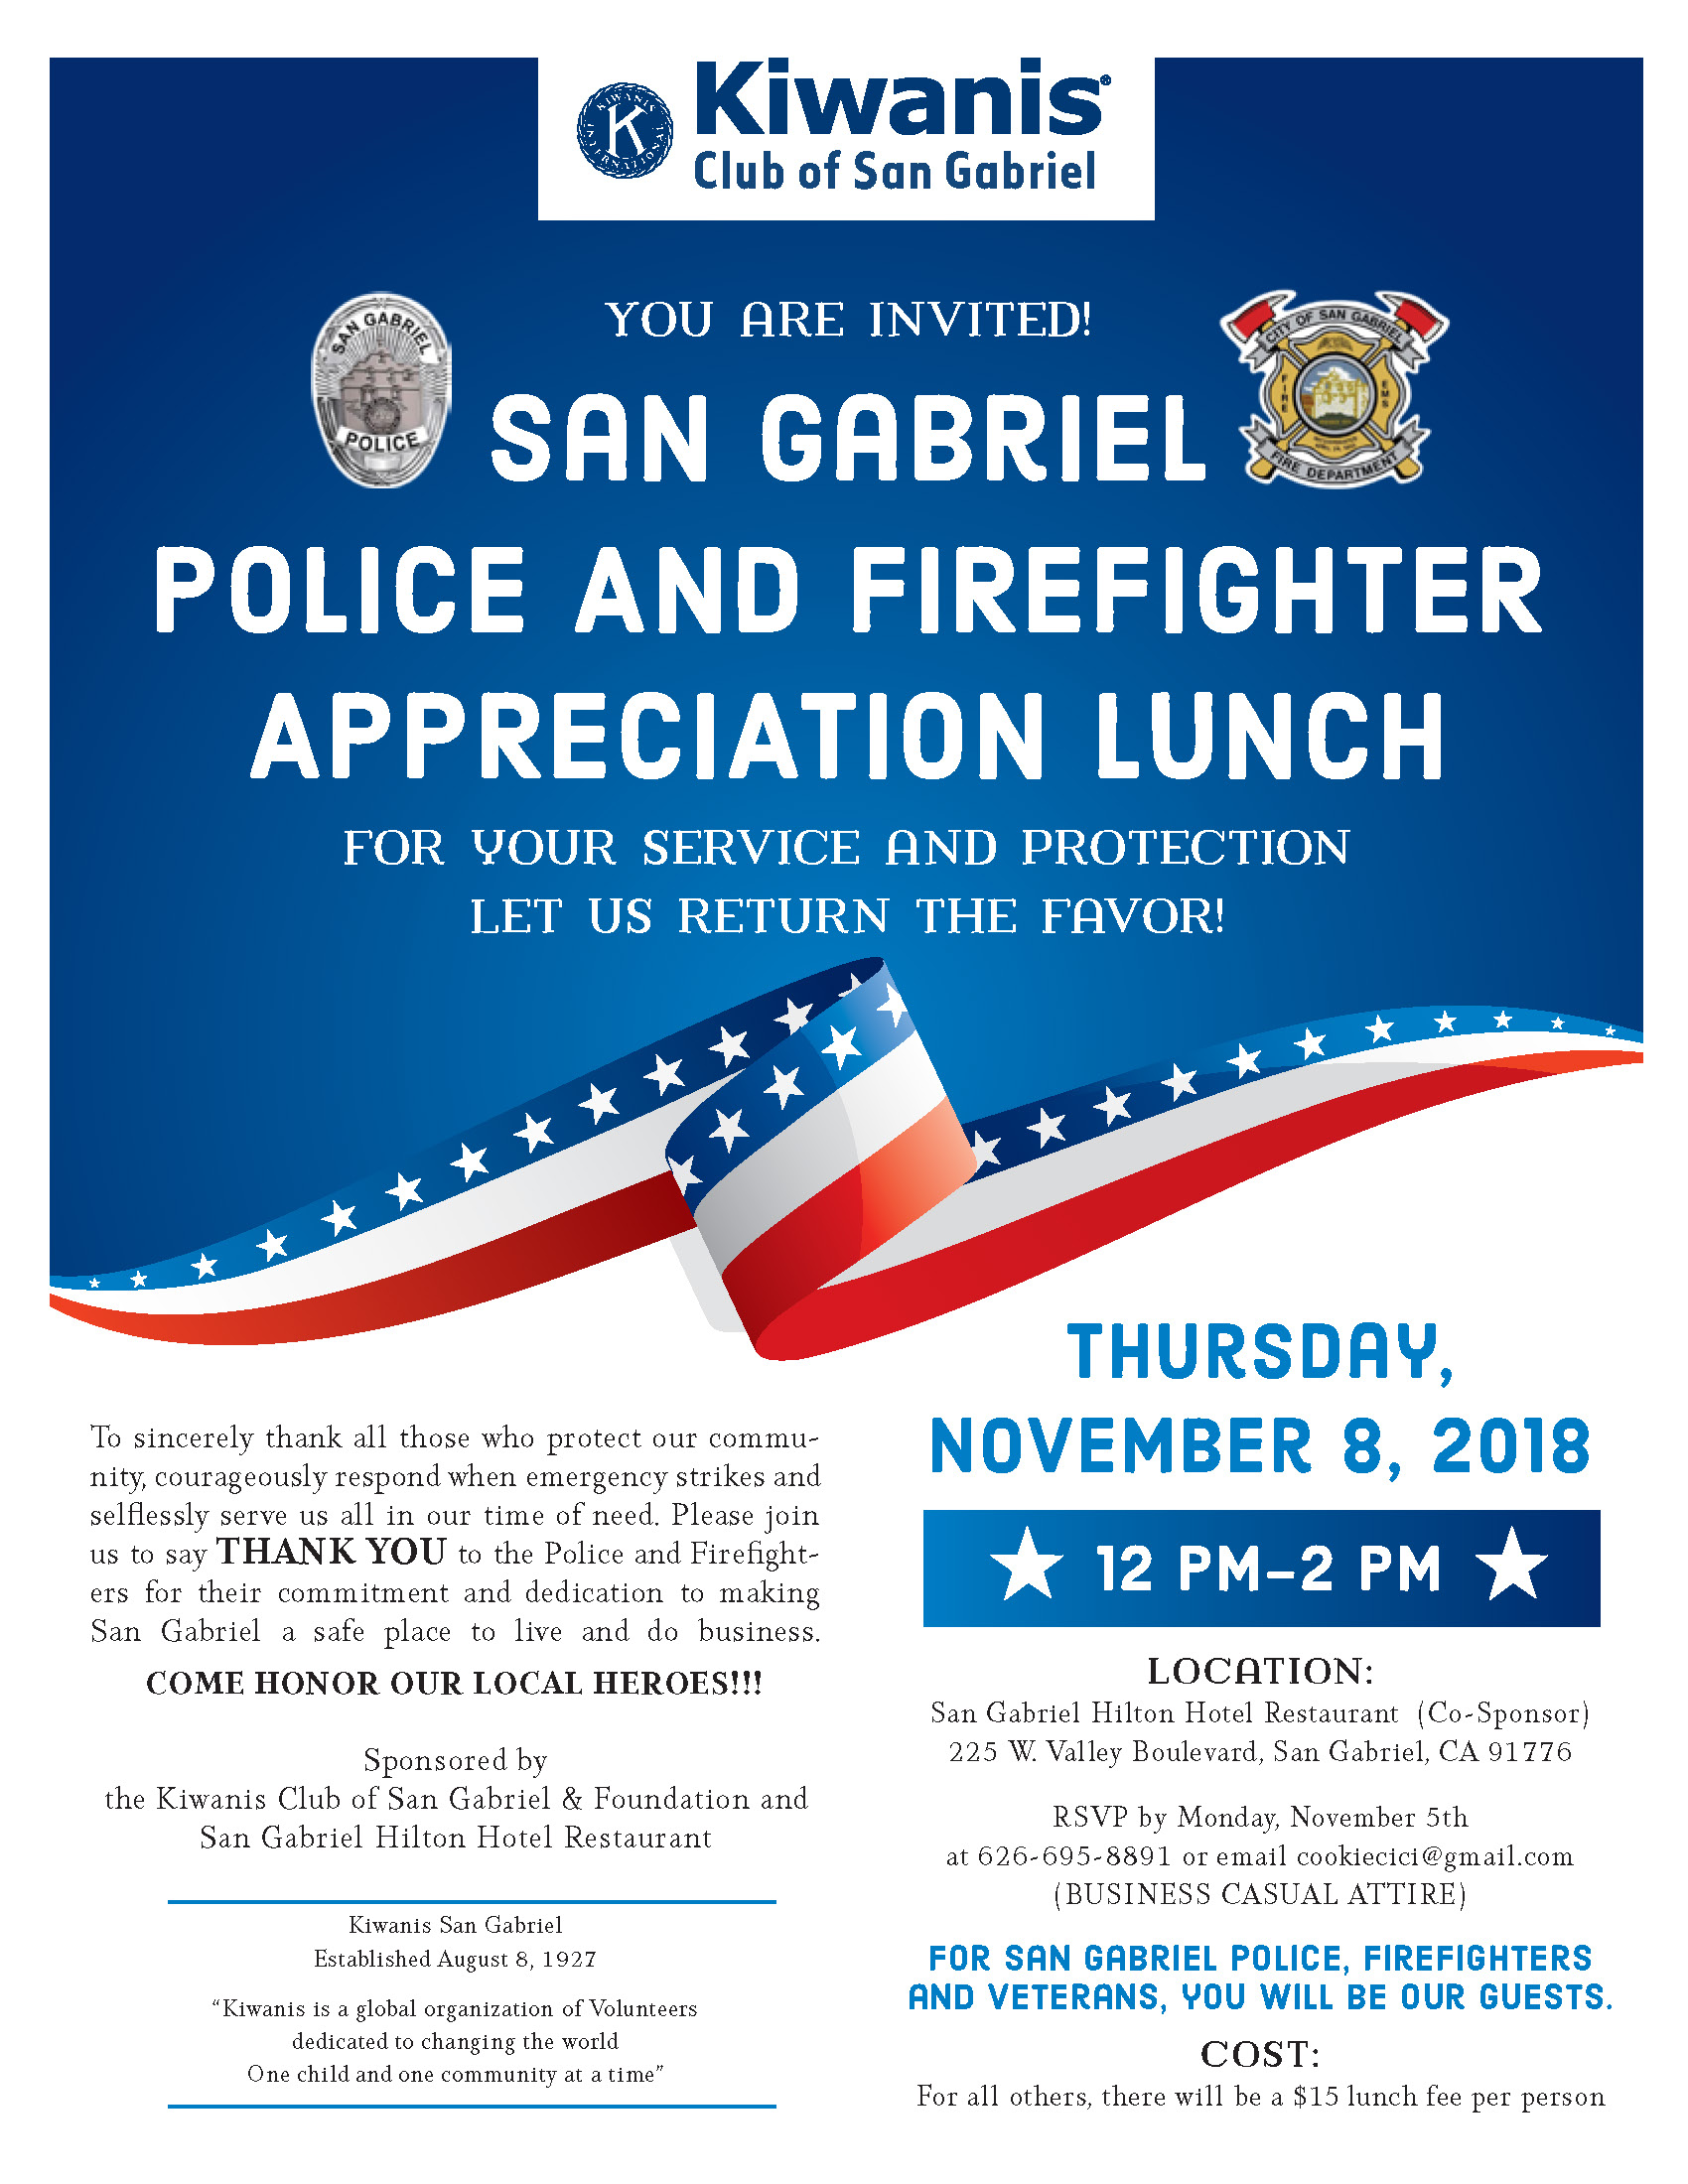 San Gabriel Police & Firefighter appreciation lunch, thursday November 8, 2018, 12 pm thru 2 pm.